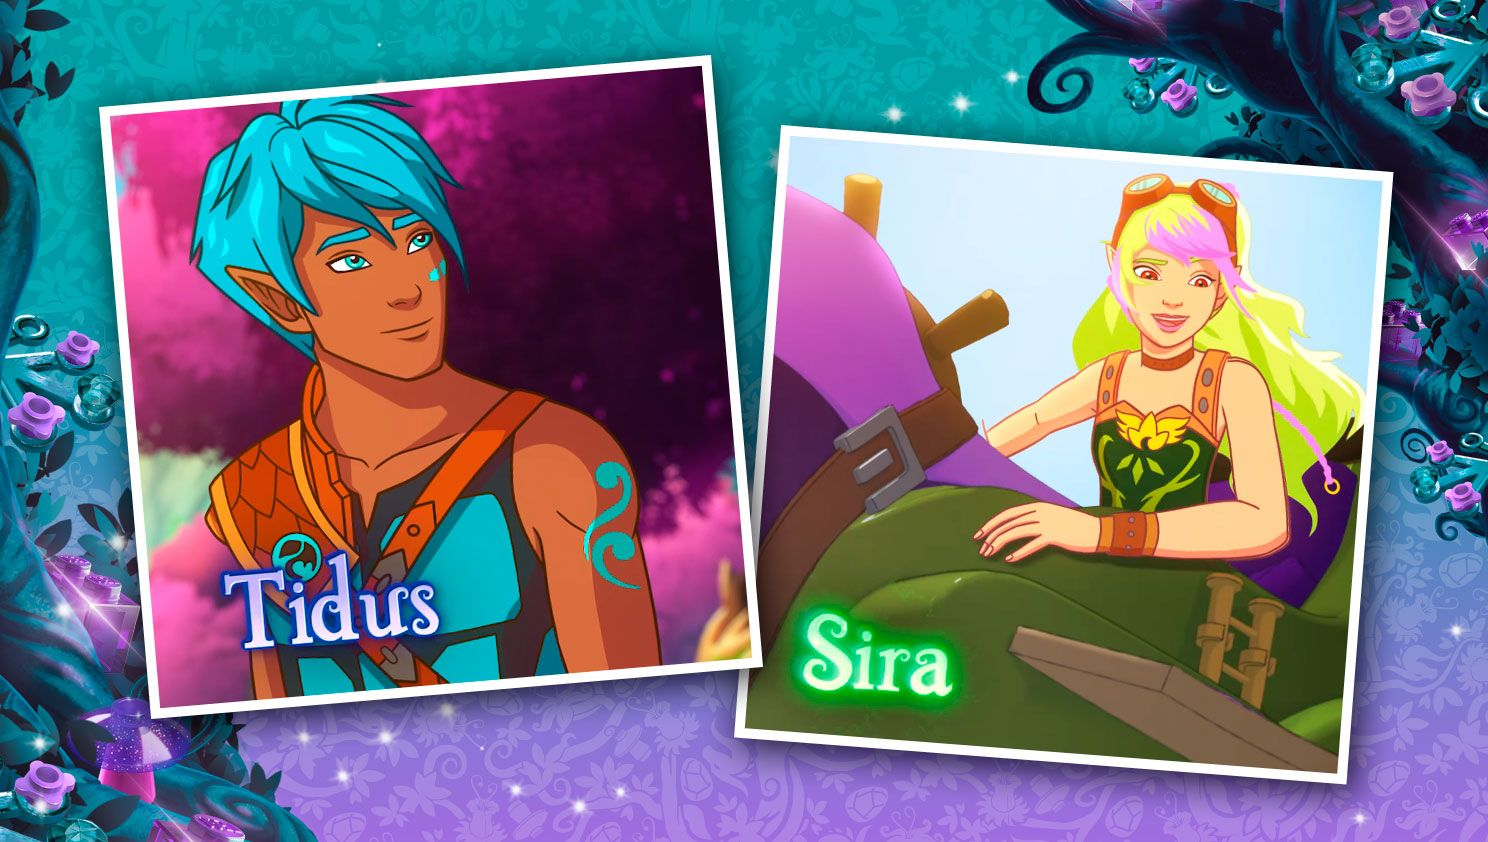 Lego 174 Elves Introducing Tidus And Sira Lego Friends